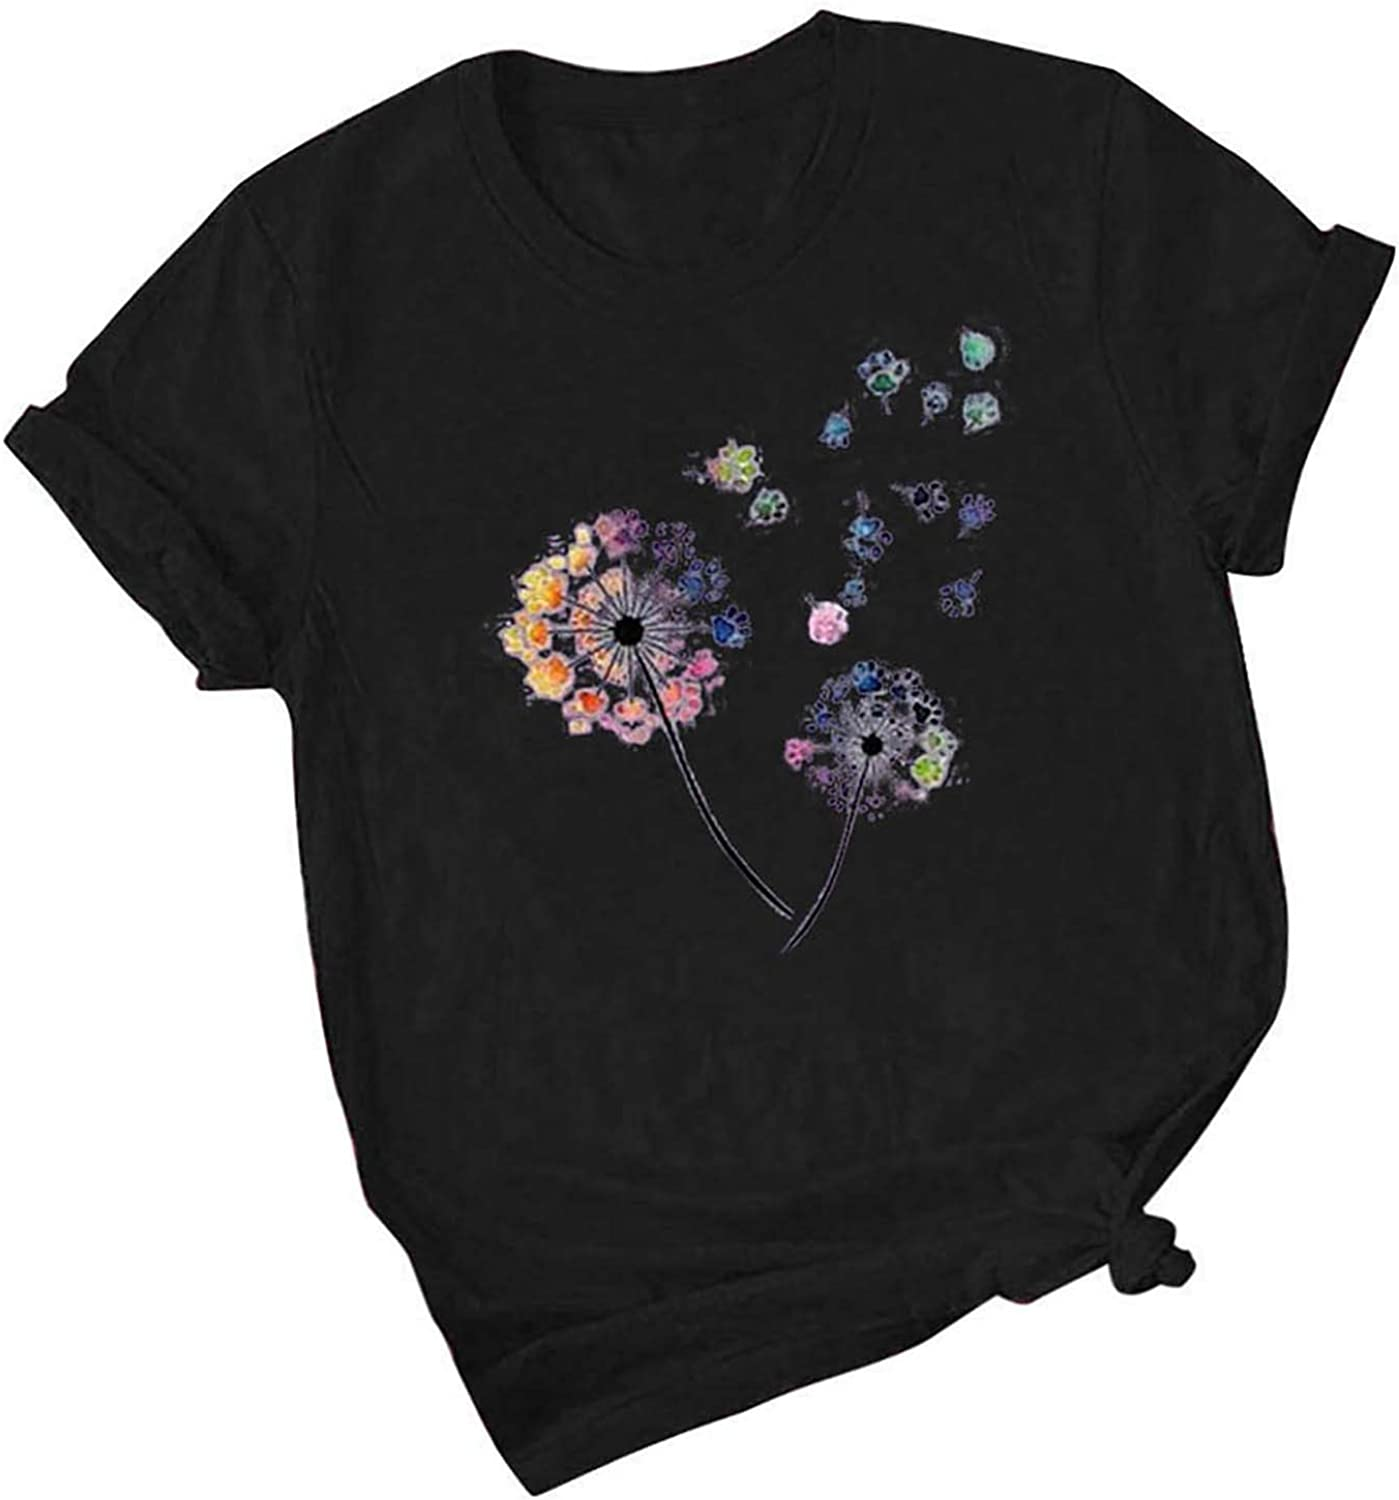 Summer Tops for Women 2021,Short Sleeve Shirts for Women, Plus Size O-Neck Tee Top Easter Bunny Letter Print Shirts T Shirts Blouse